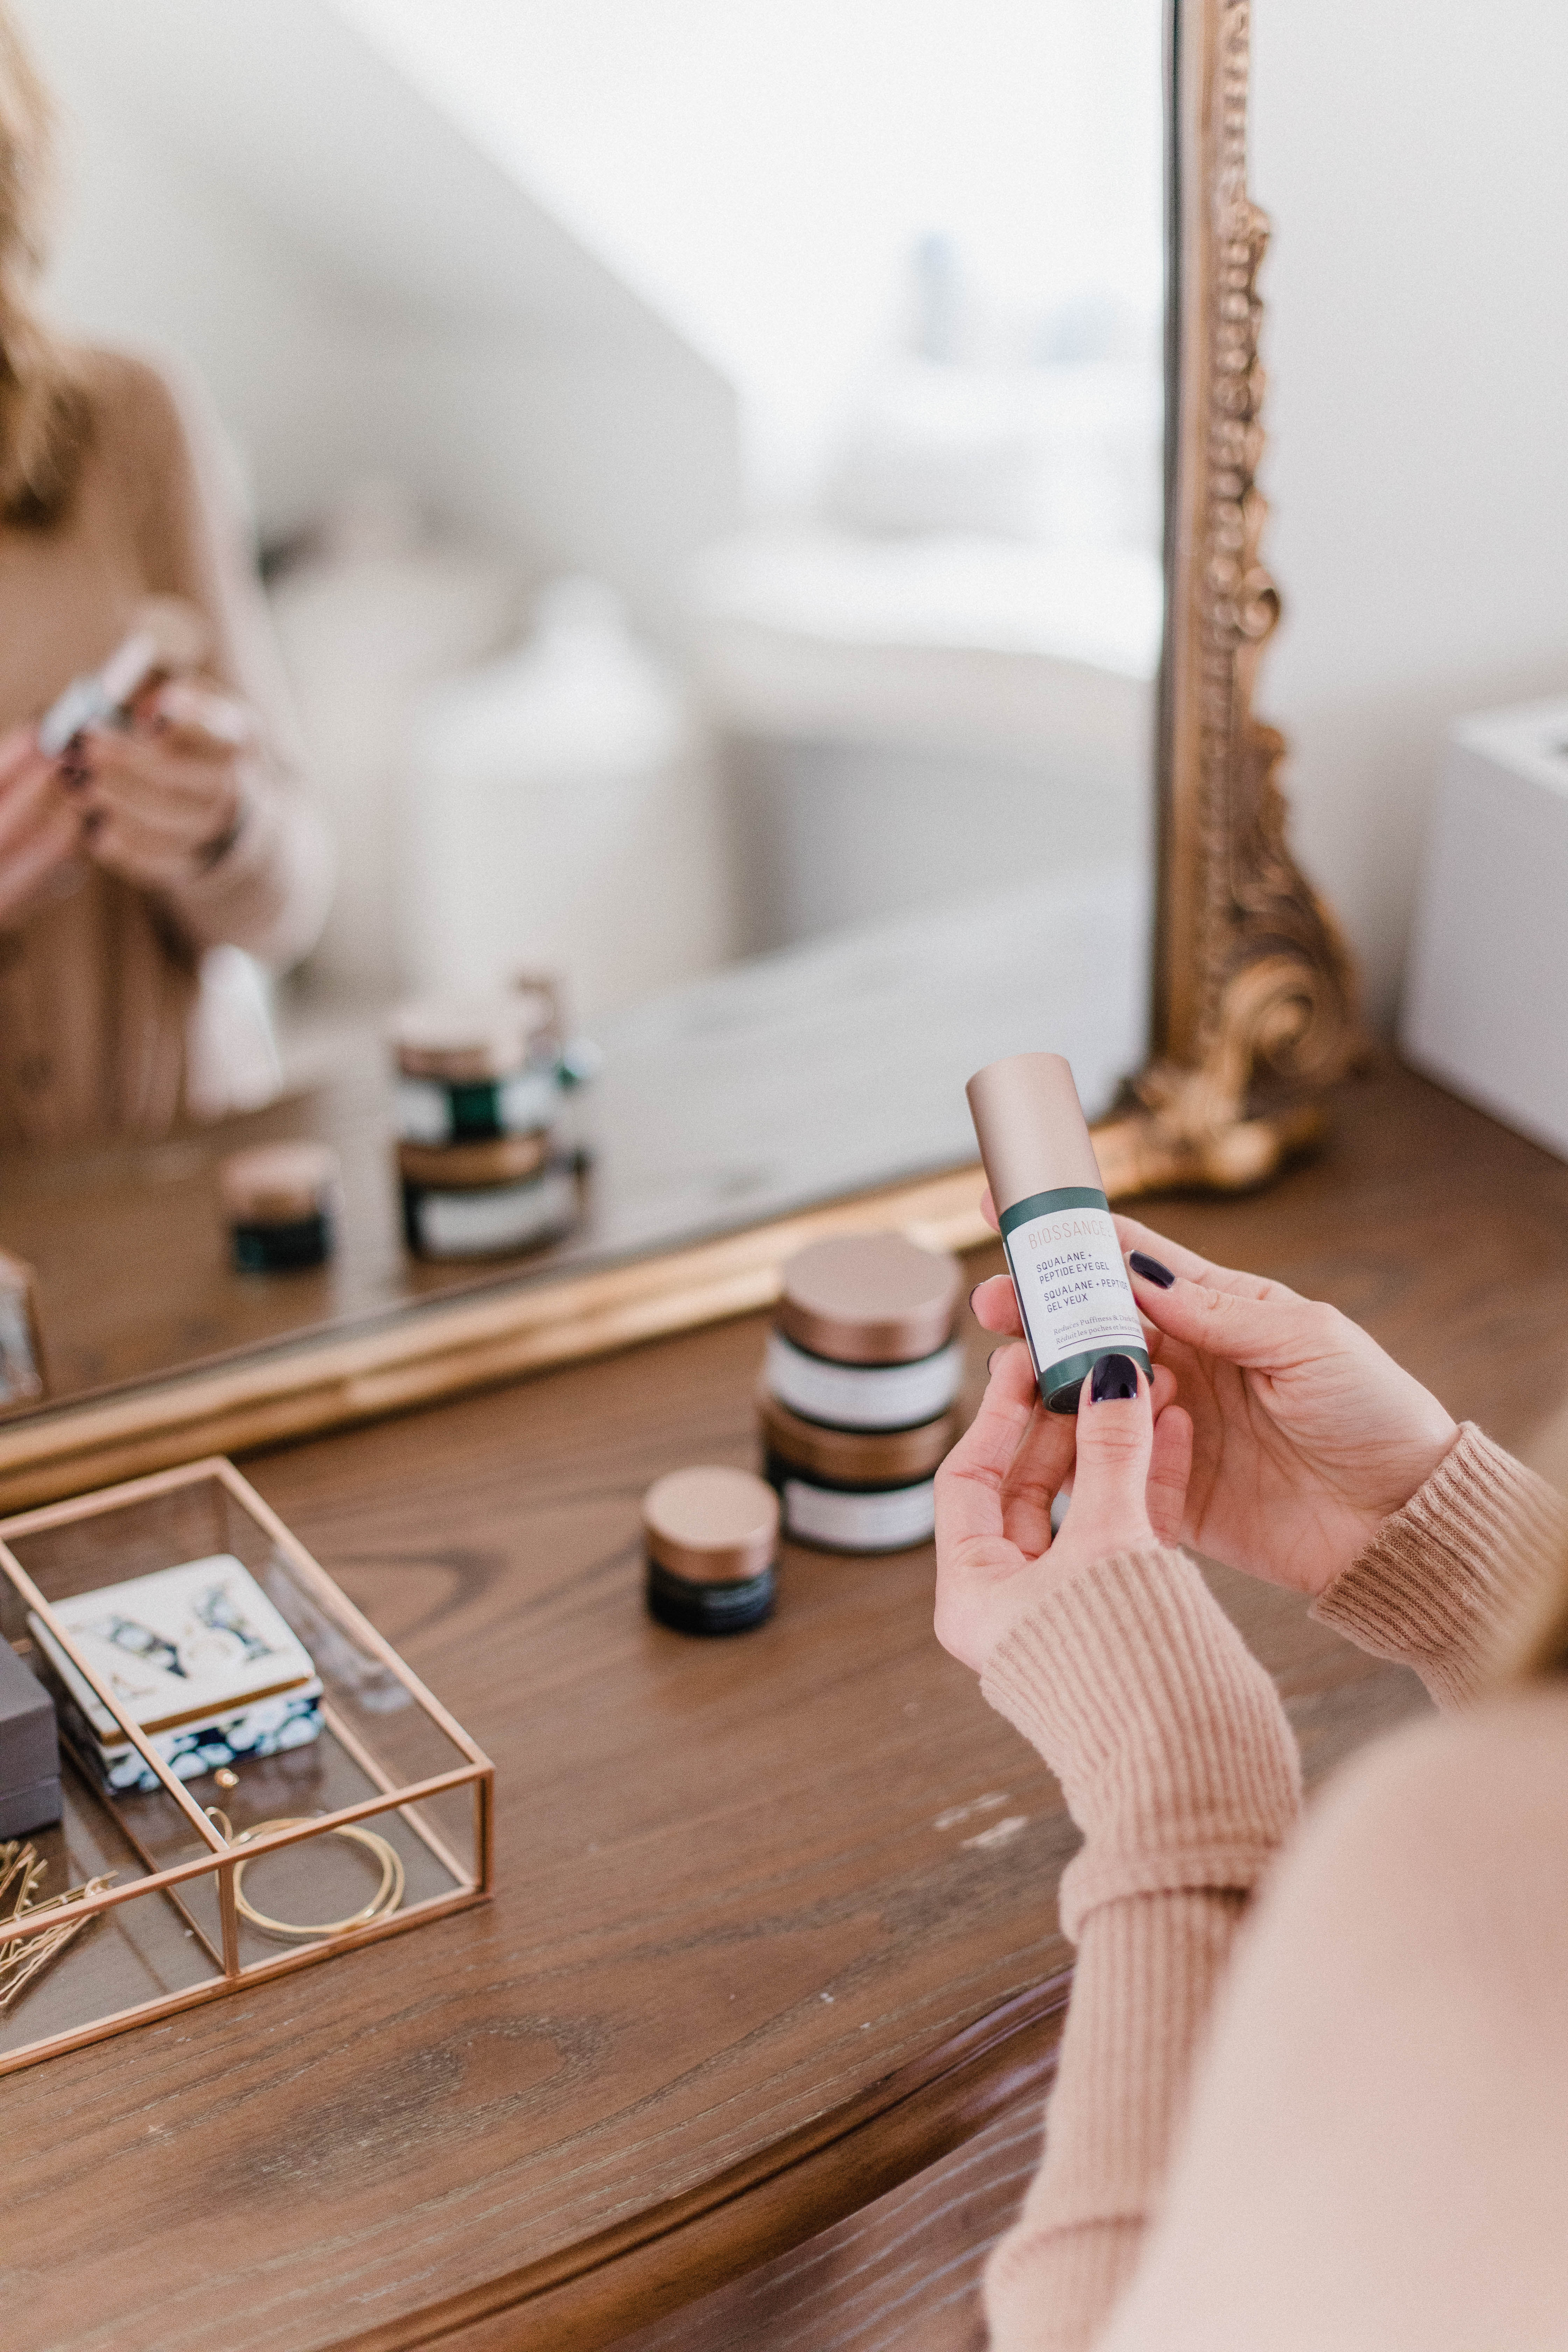 Connecticut life and style blogger Lauren McBride shares her current favorite @Biossance products, including a flash sale for Black Friday #ad